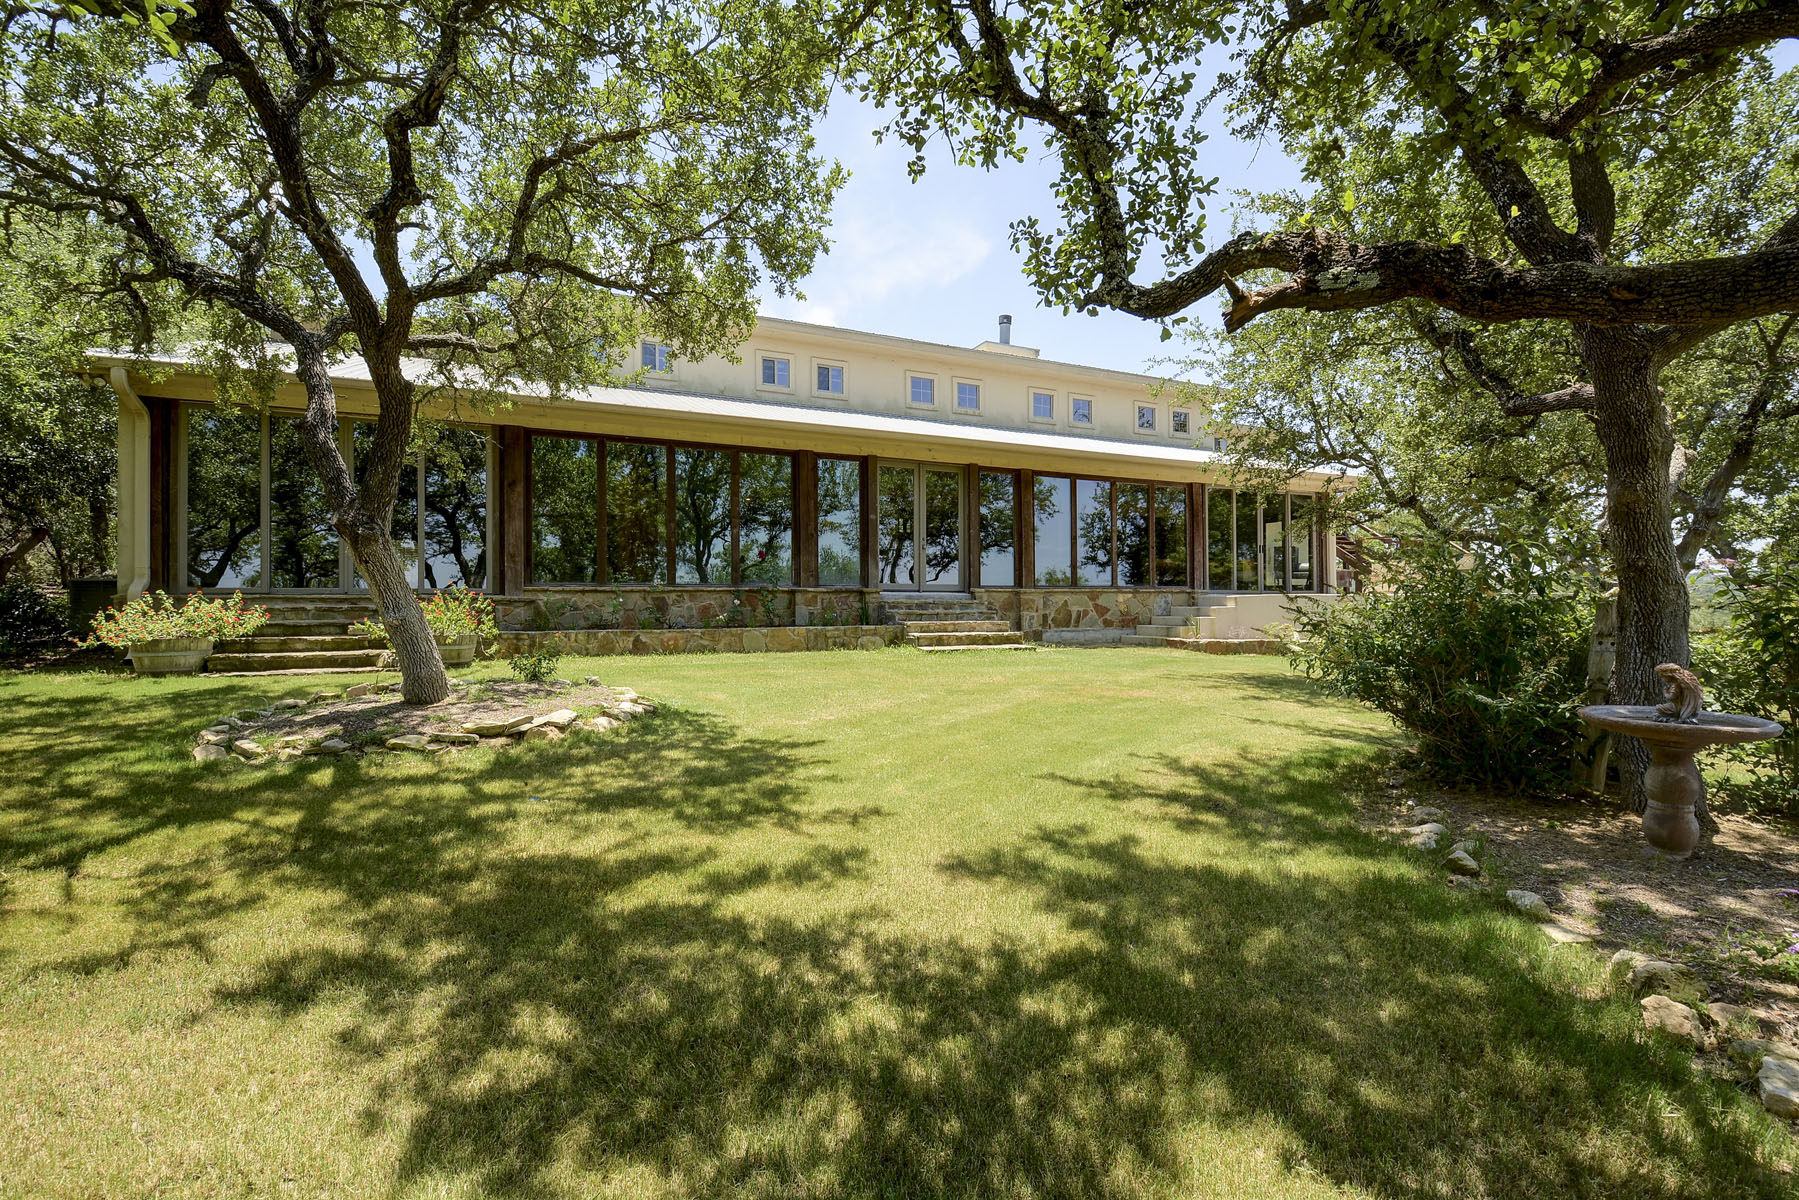 Other Residential for Rent at Panoramic Views of the Texas Hill Country 140 Granite Ridge Dr Spicewood, Texas 78669 United States